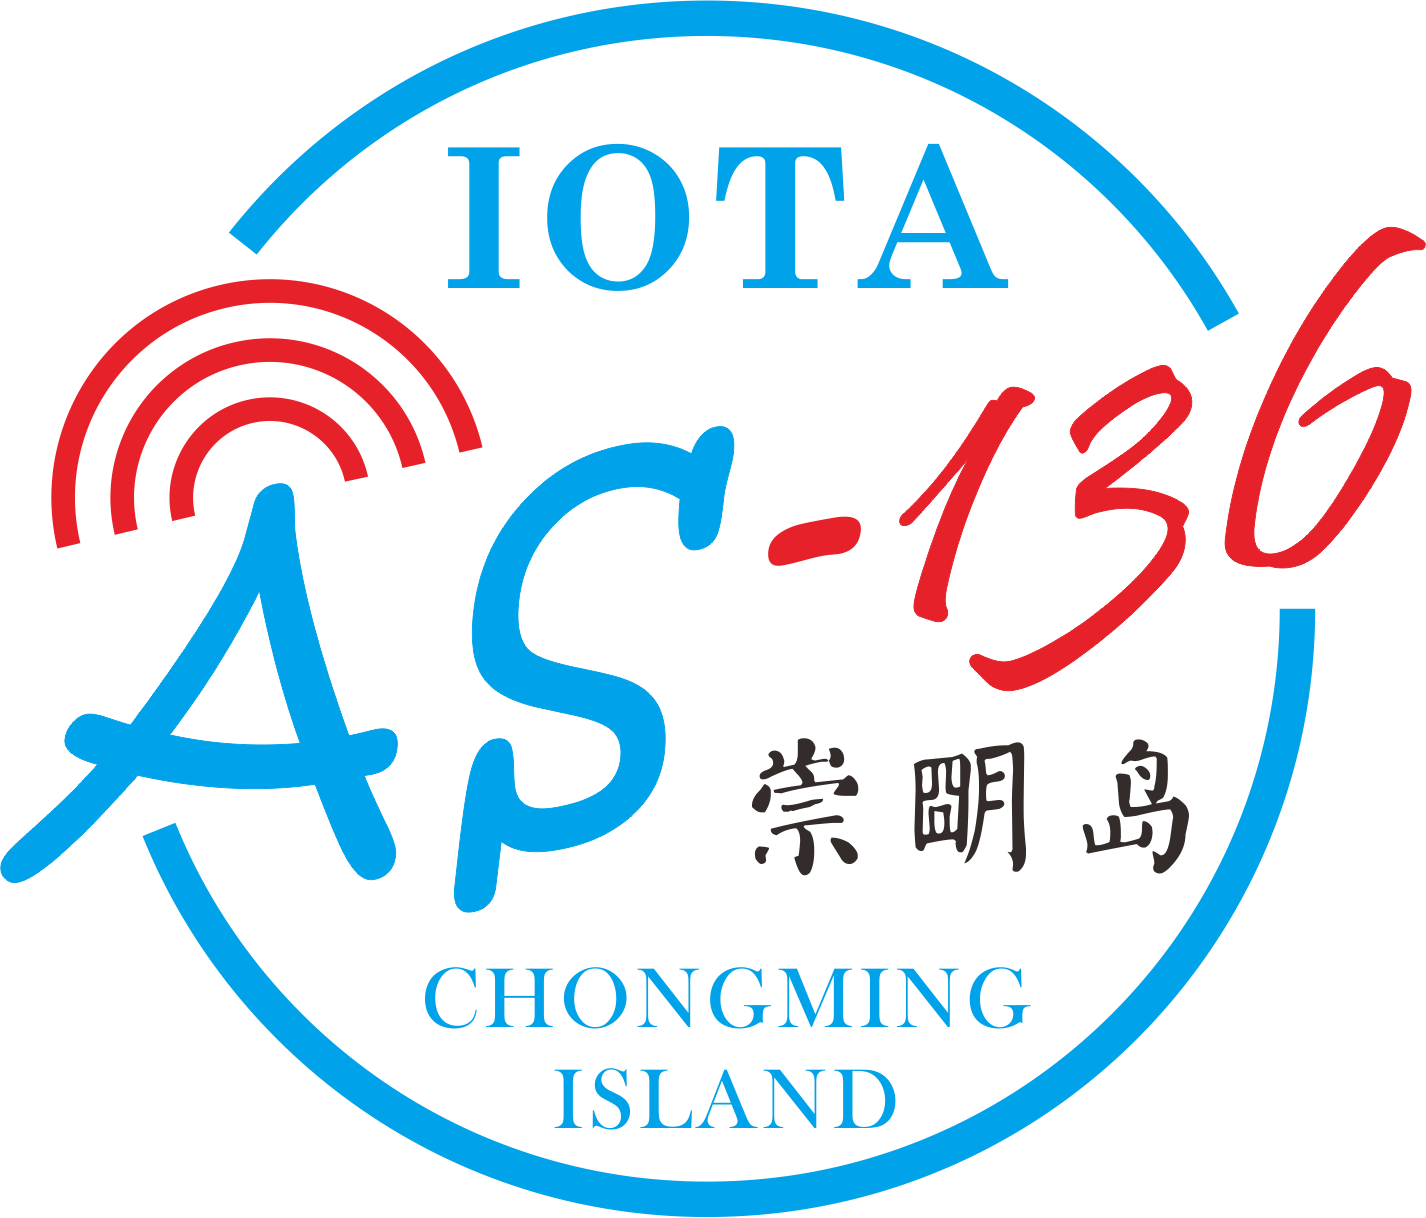 BG4TRN – Chongming Isl, AS-136